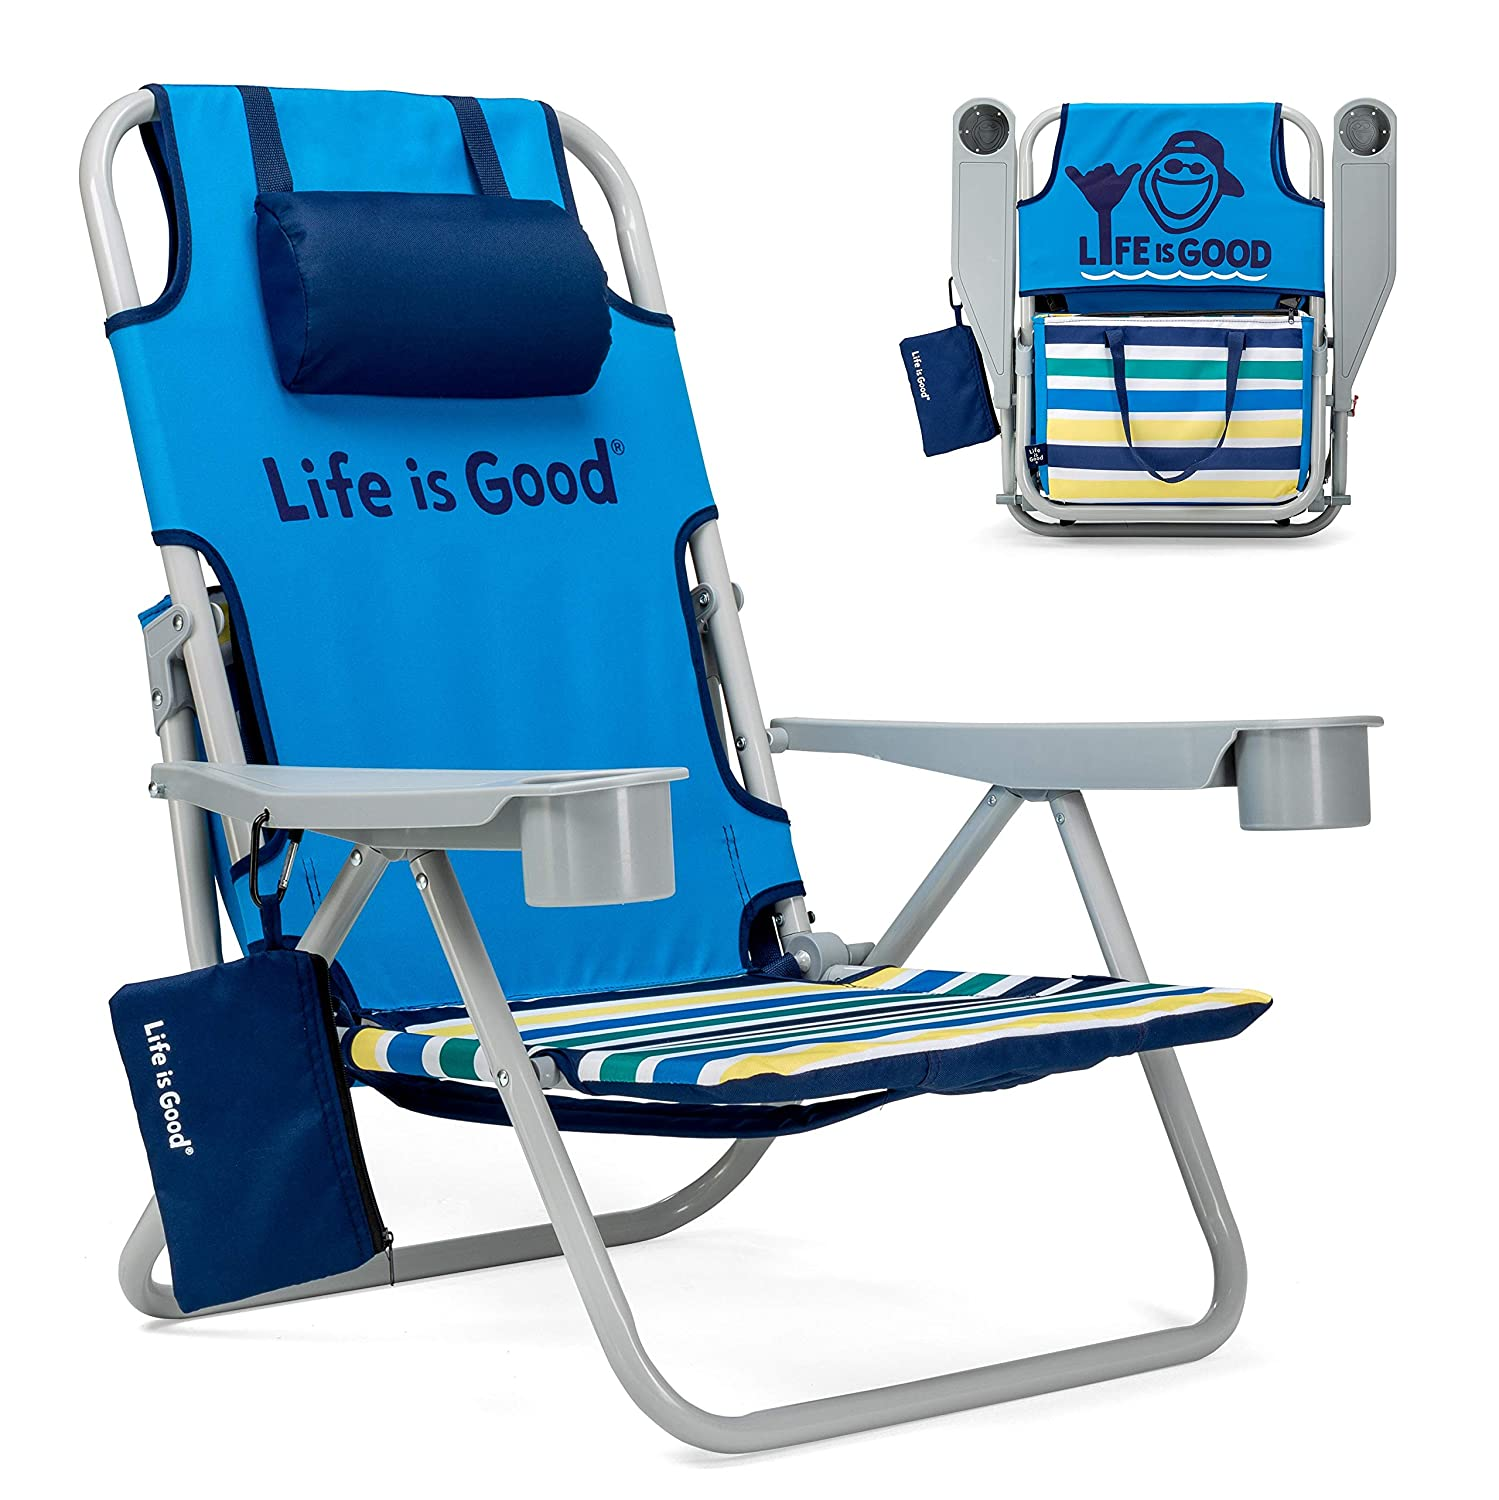 Life is Good Beach Chair with Cooler Tommy Bahama Beach Chairs